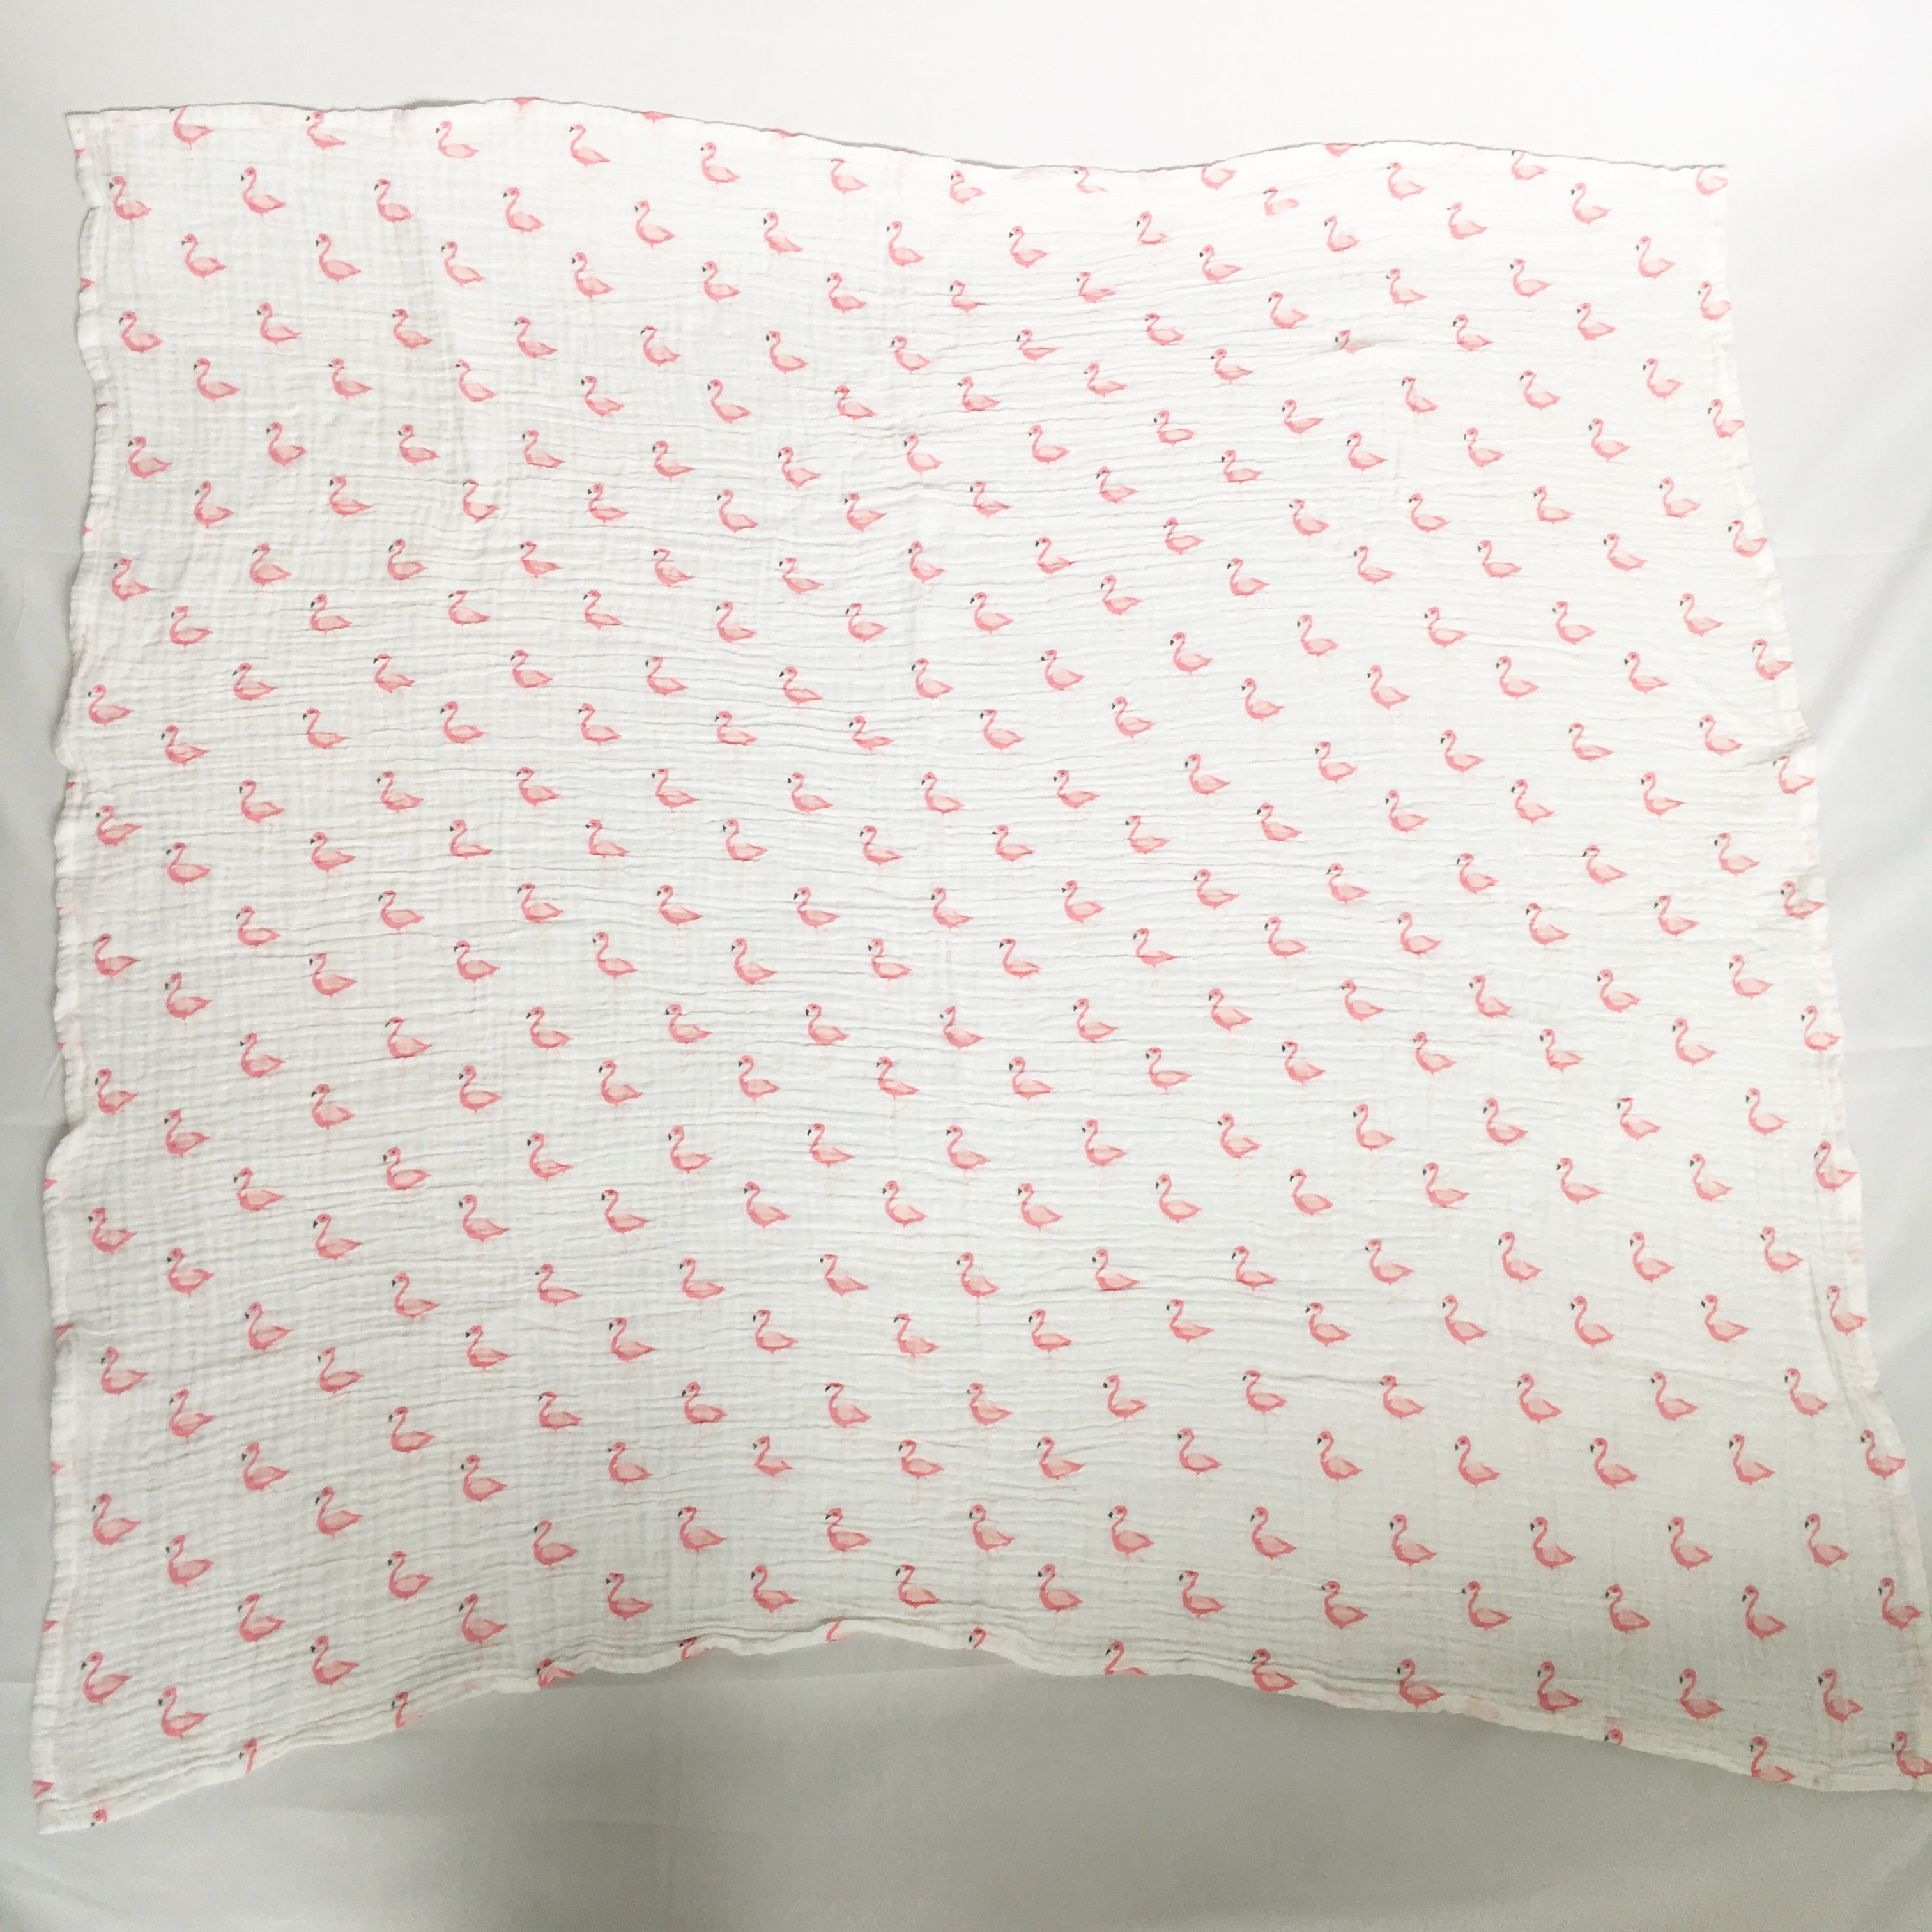 Flamingo Muslin Blanket